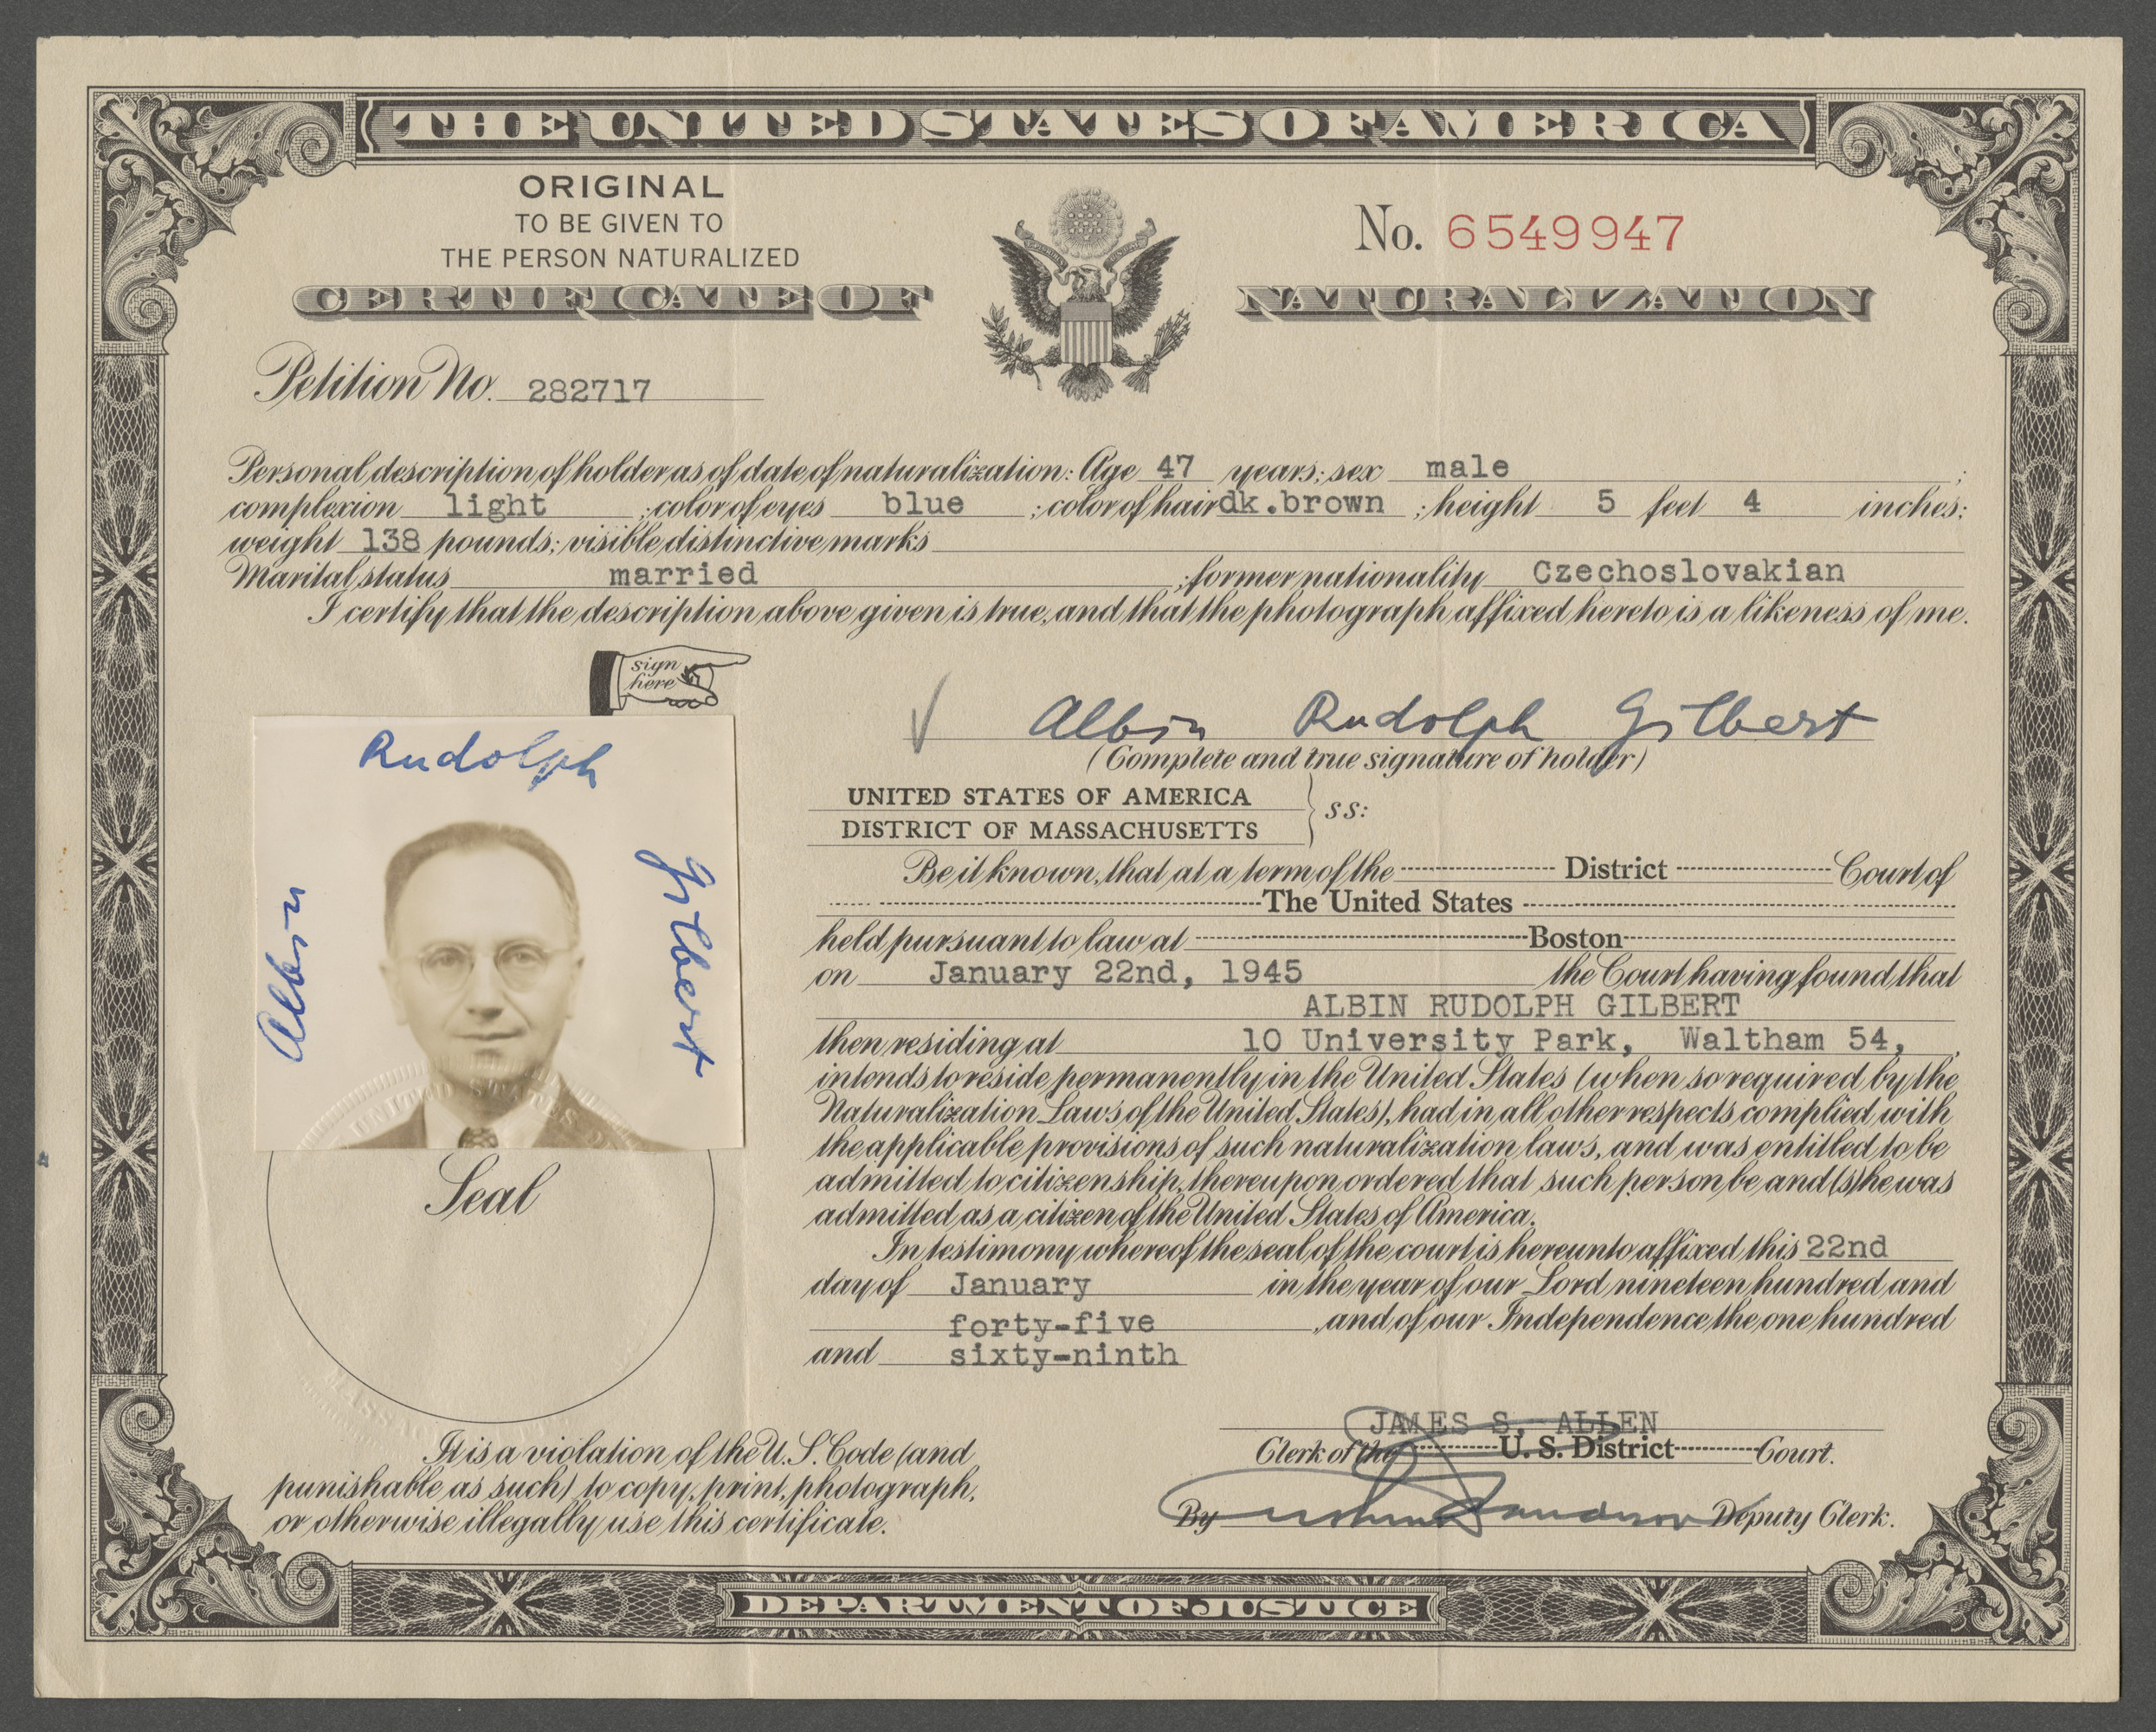 Certificate of Naturalization issued to Albin Rudoph Gilbert (previously Goldschmied).